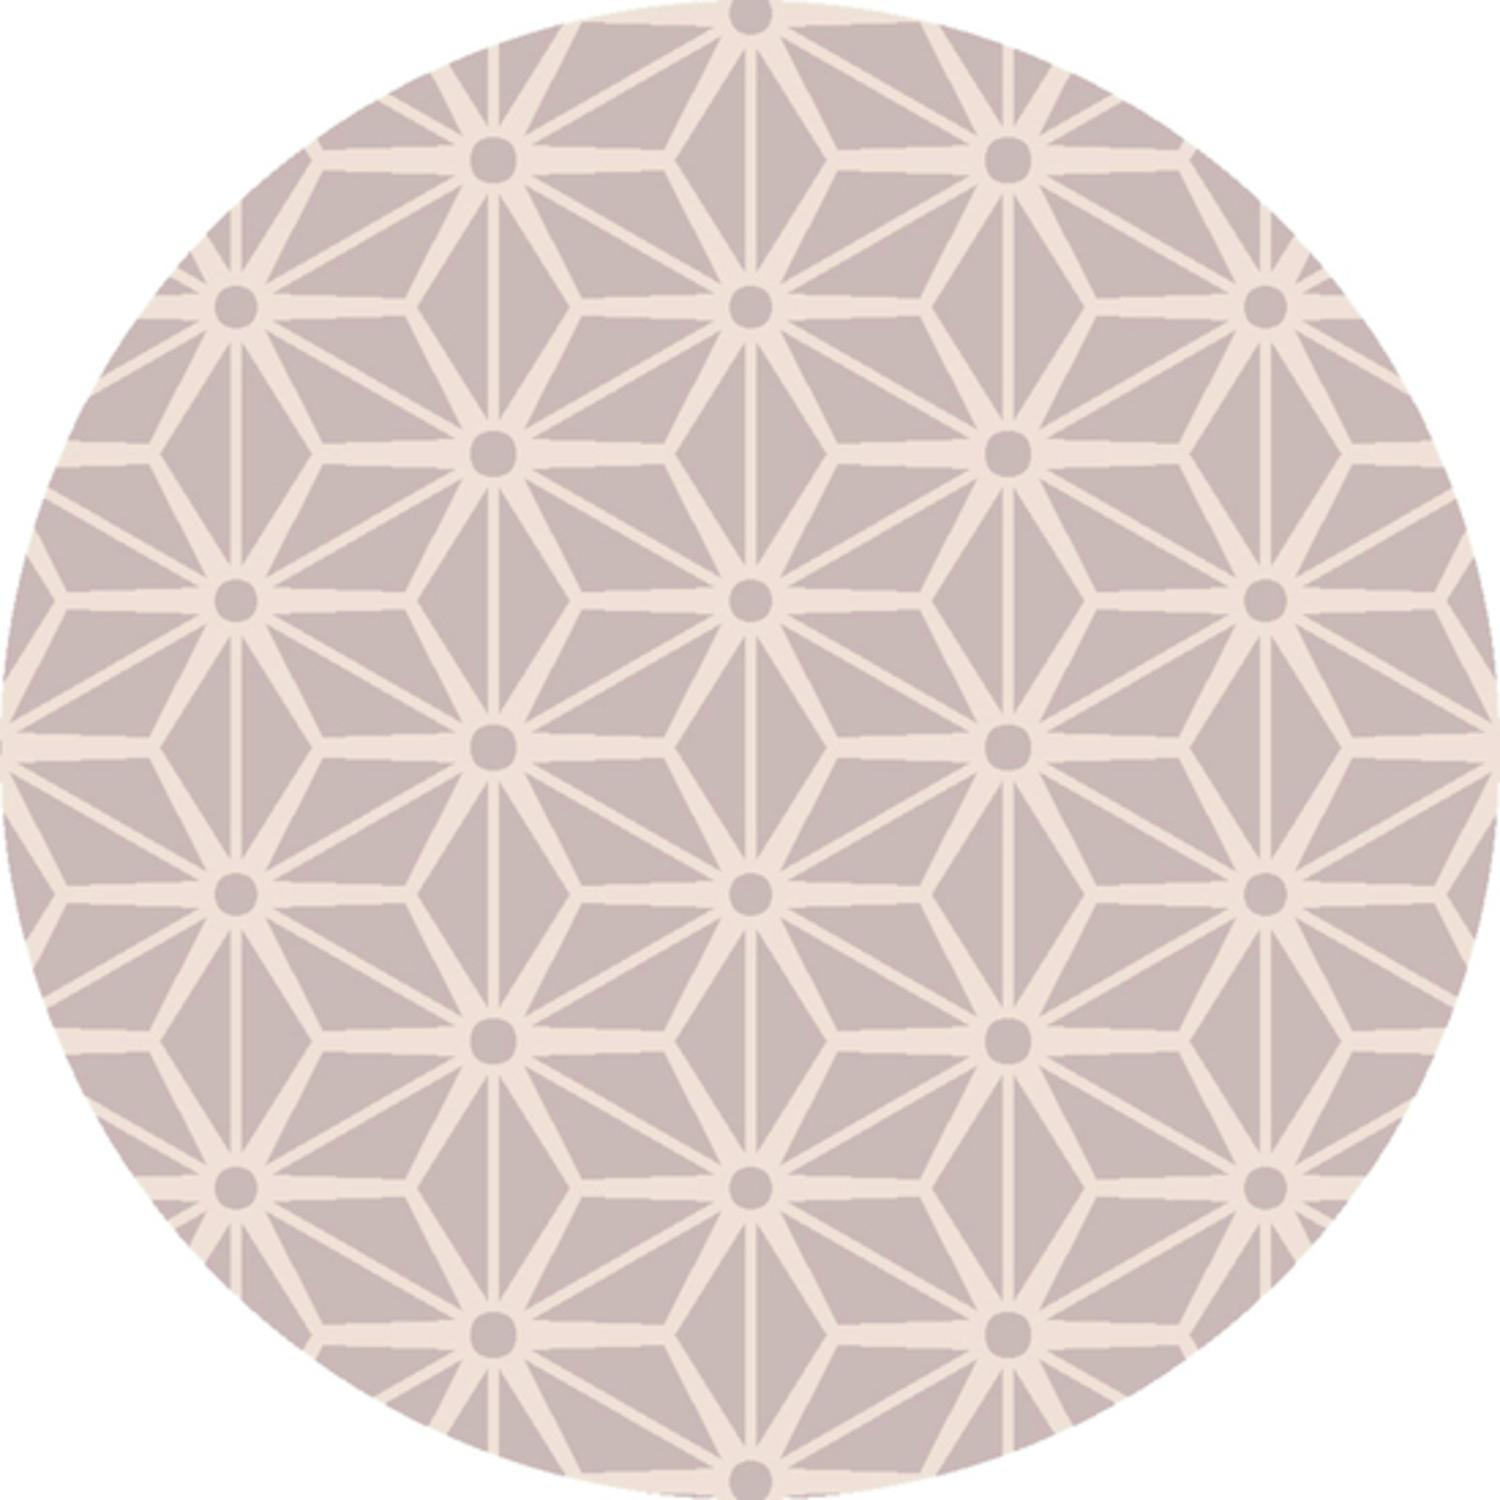 8' Shimmering Star Light Gray and White Hand Woven Wool Round Area Throw Rug